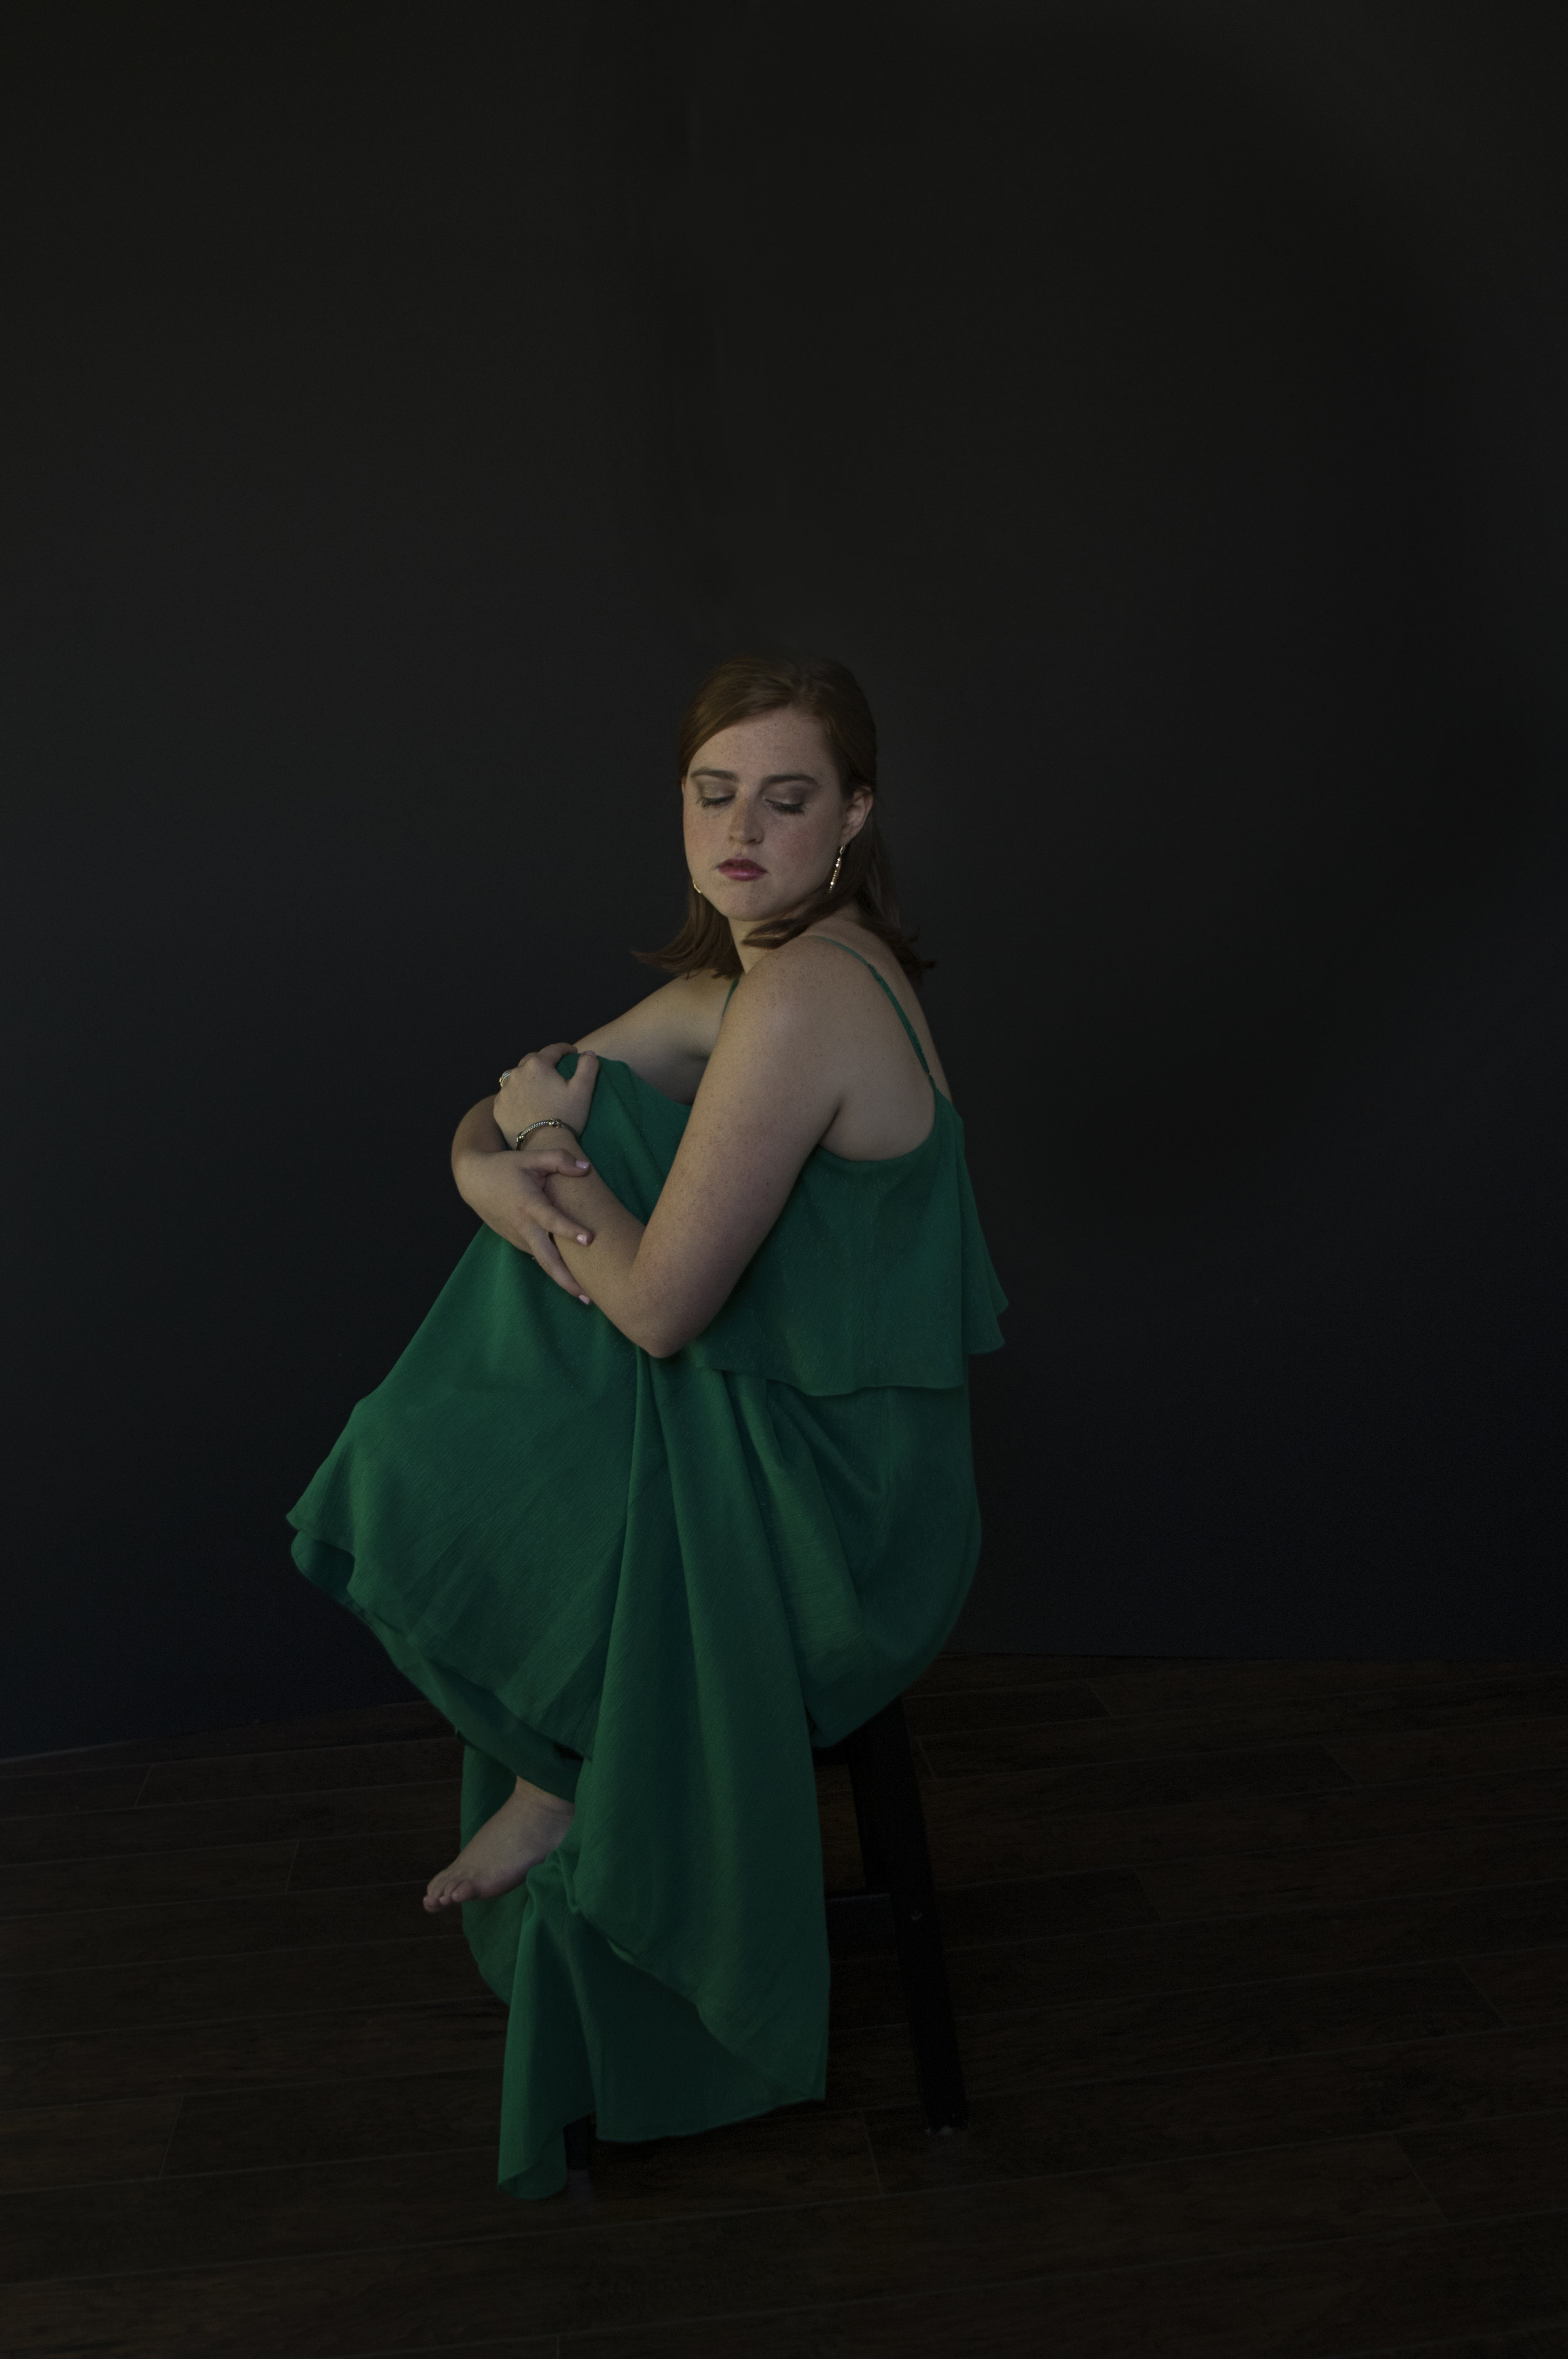 Heirloom Portrait of a Young Woman in a Gown.